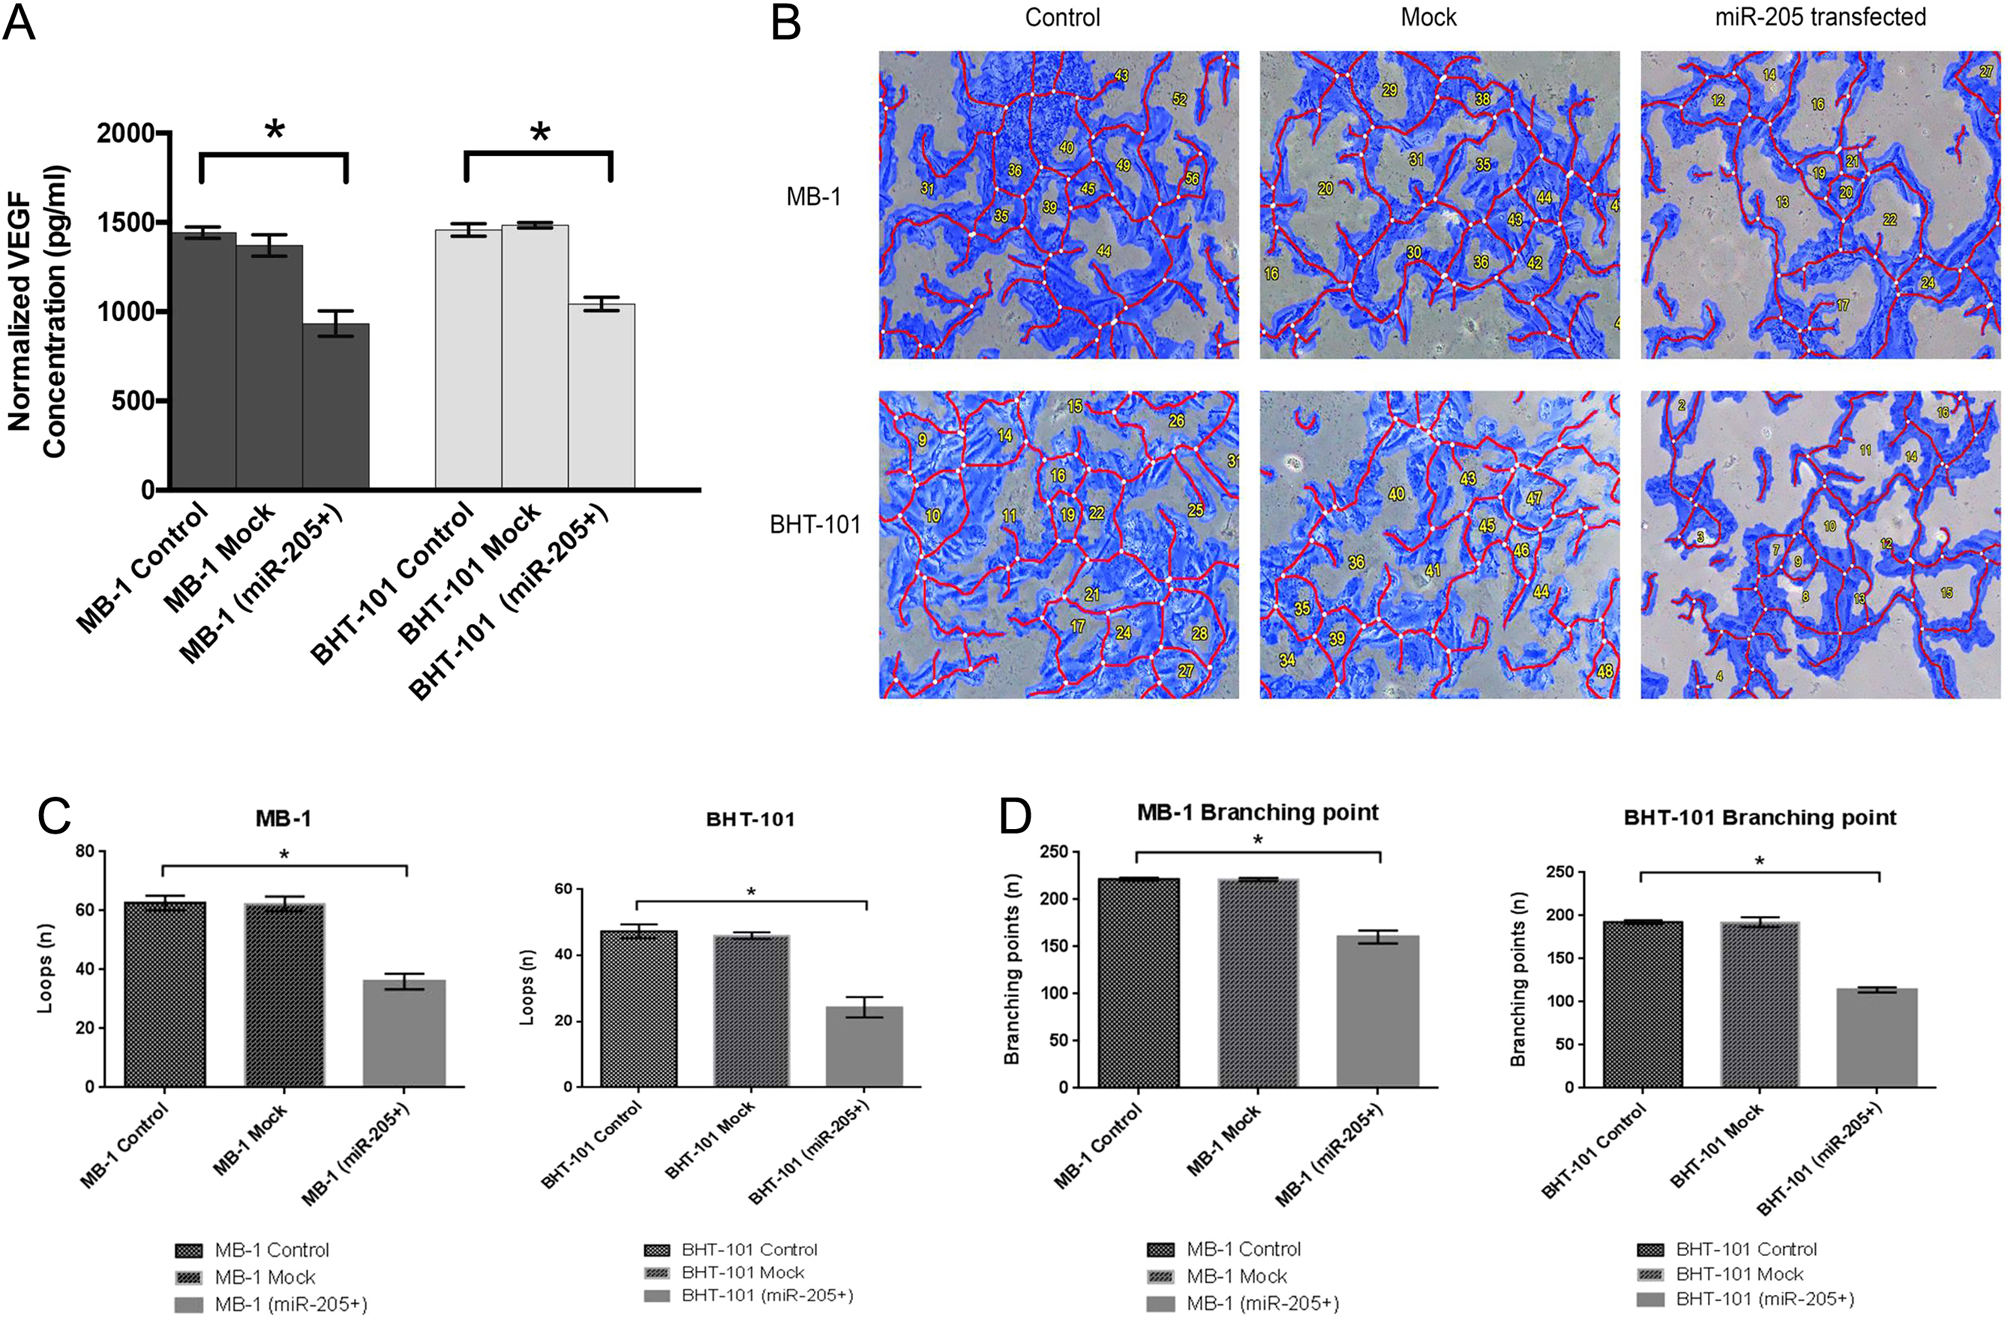 miR-205 targets angiogenesis and EMT concurrently in anaplastic